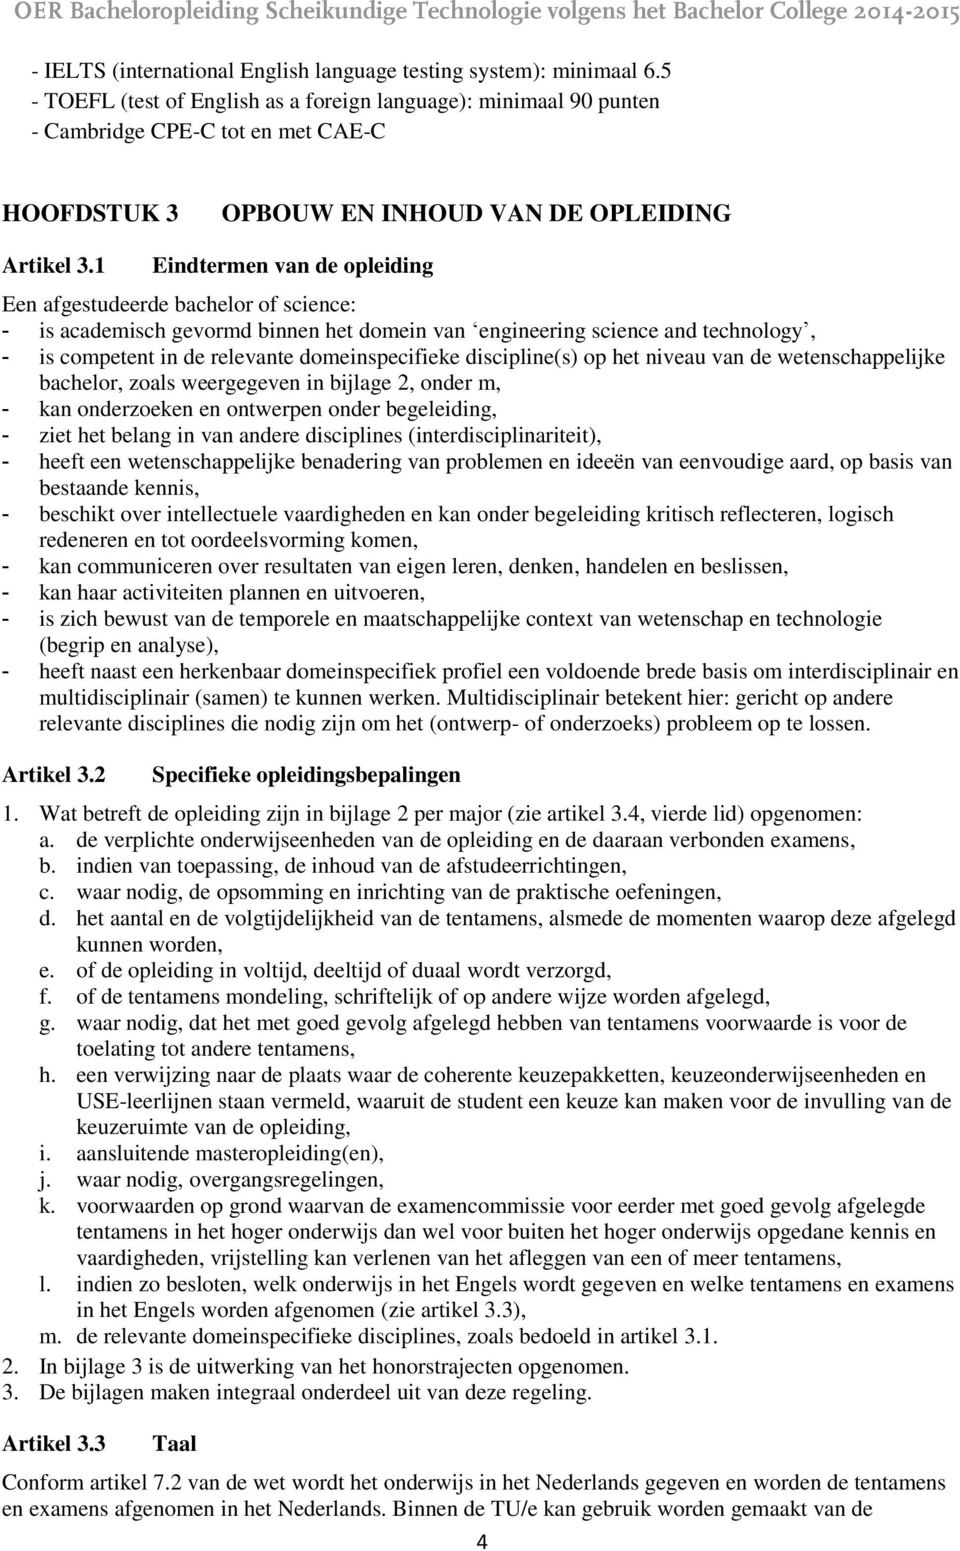 1 Eindtermen van de opleiding Een afgestudeerde bachelor of science: - is academisch gevormd binnen het domein van engineering science and technology, - is competent in de relevante domeinspecifieke